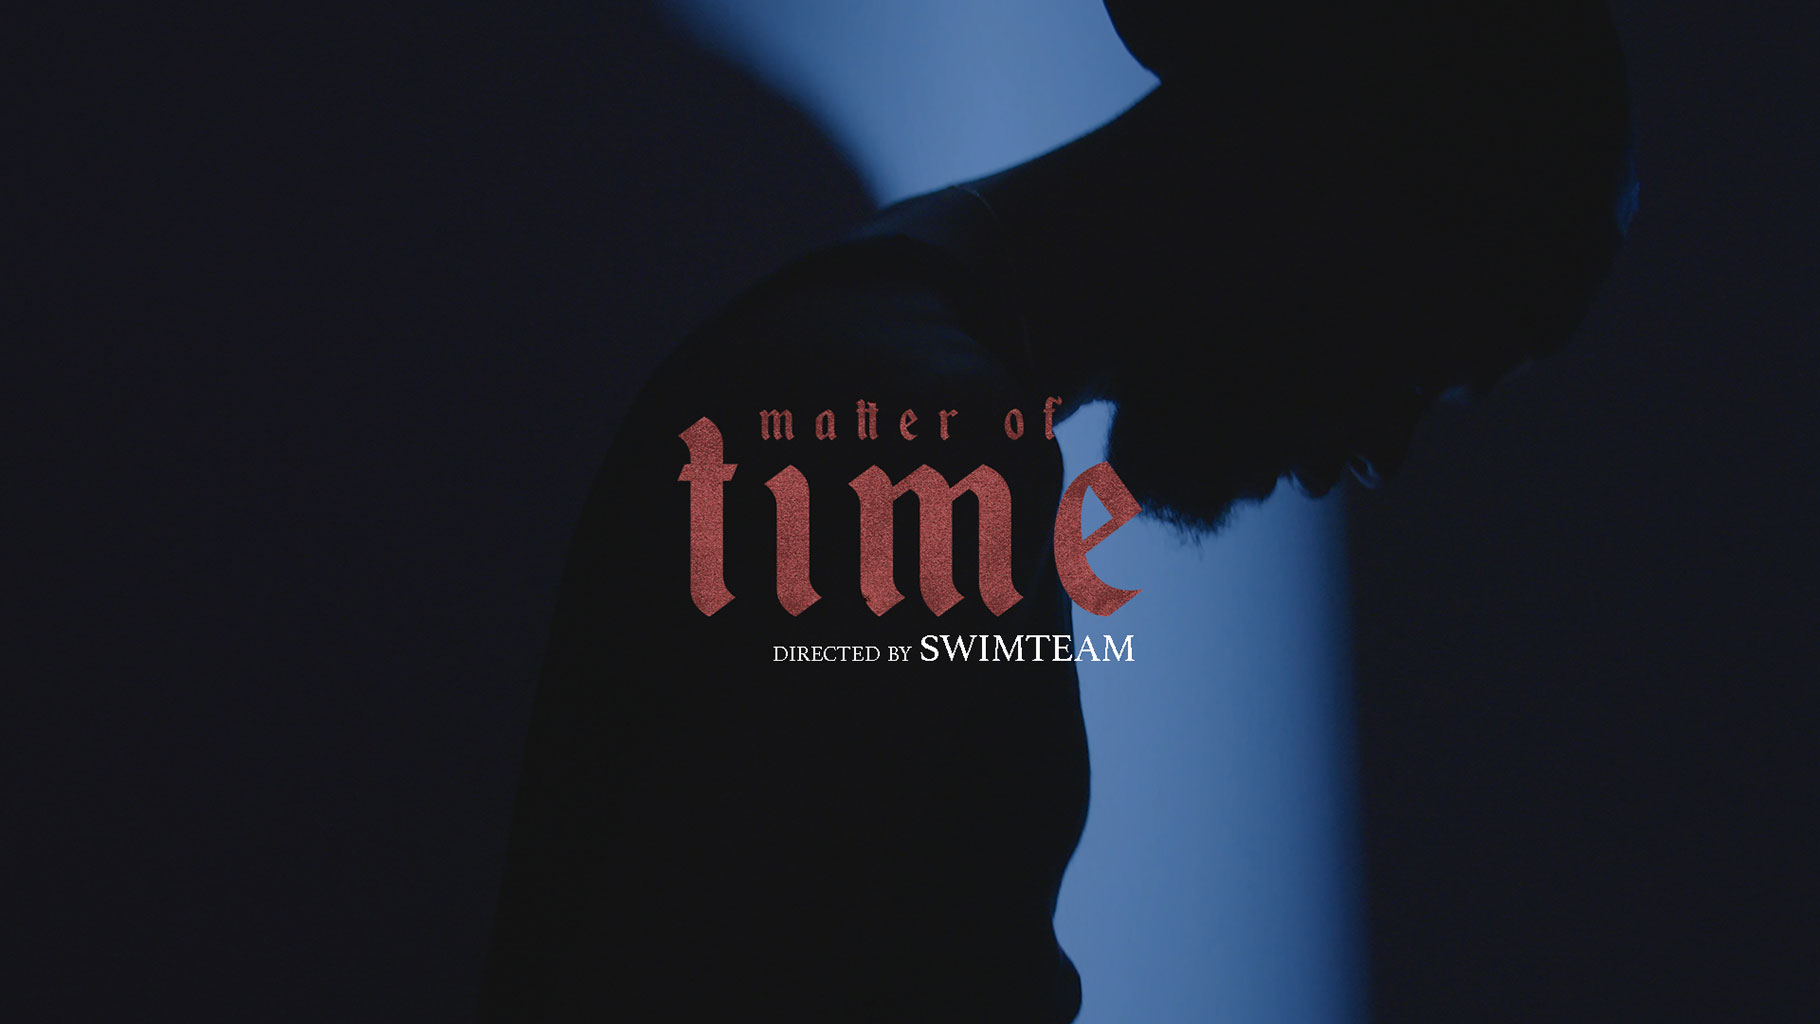 Matter of Time by swimteam and Campana